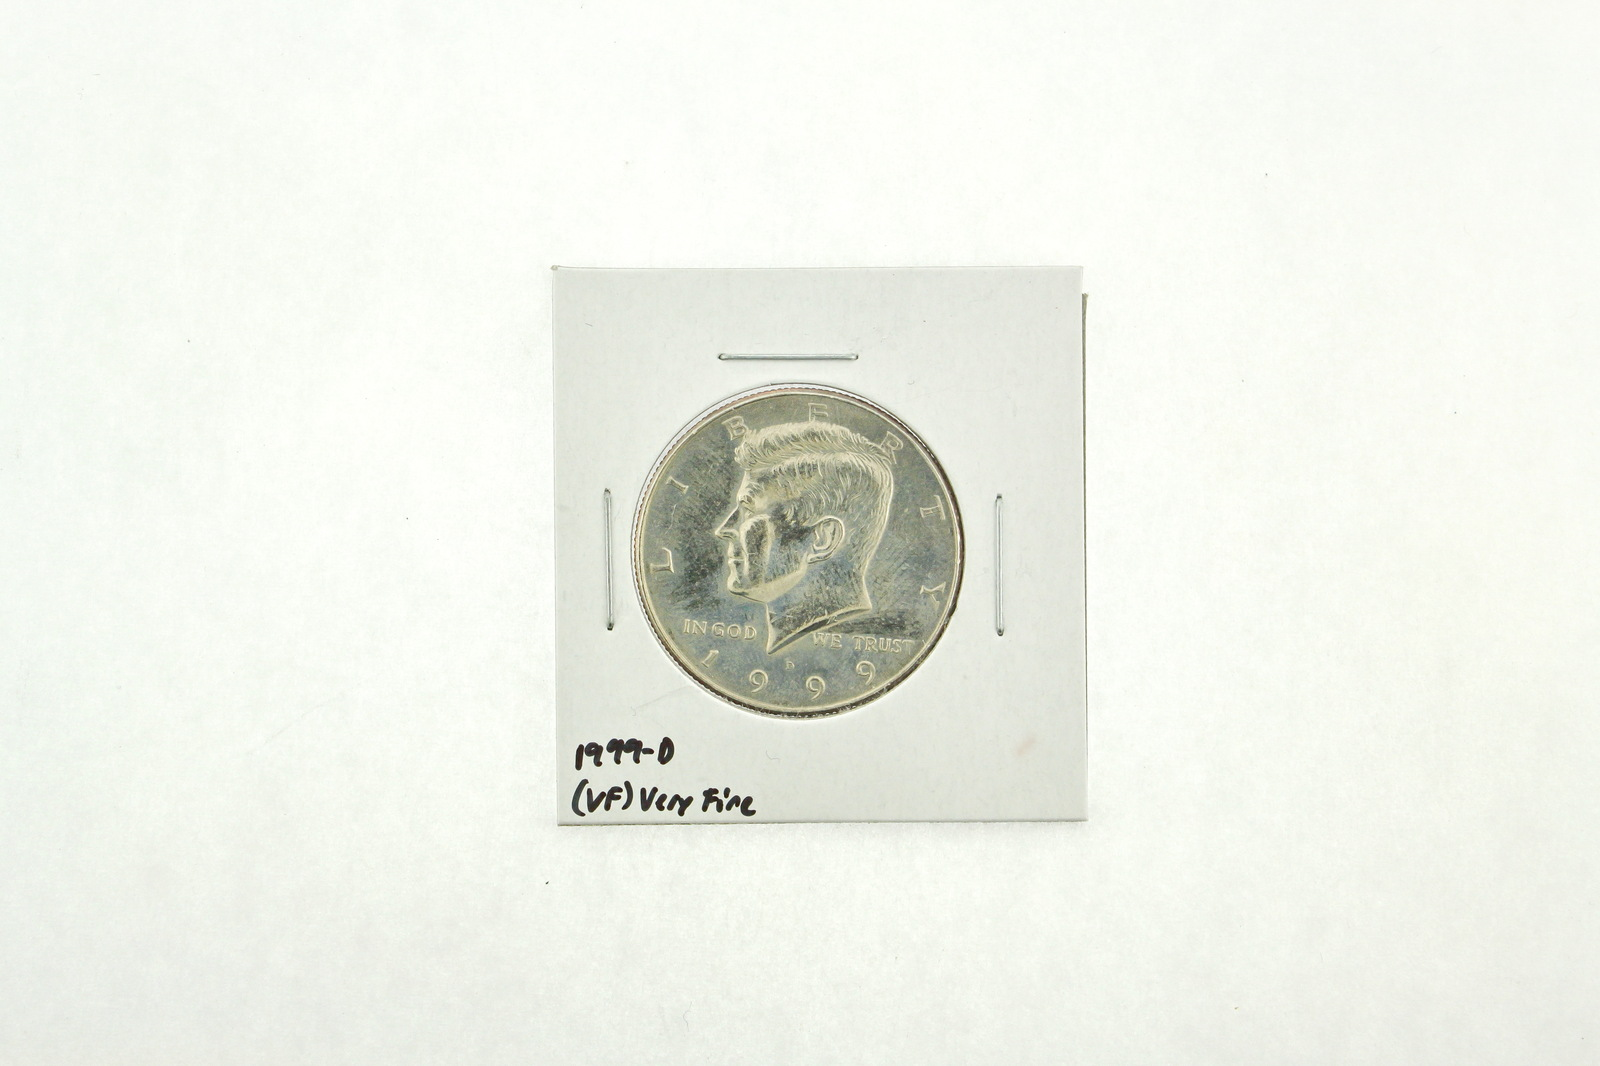 Primary image for 1999-D Kennedy Half Dollar (VF) Very Fine N2-3986-2